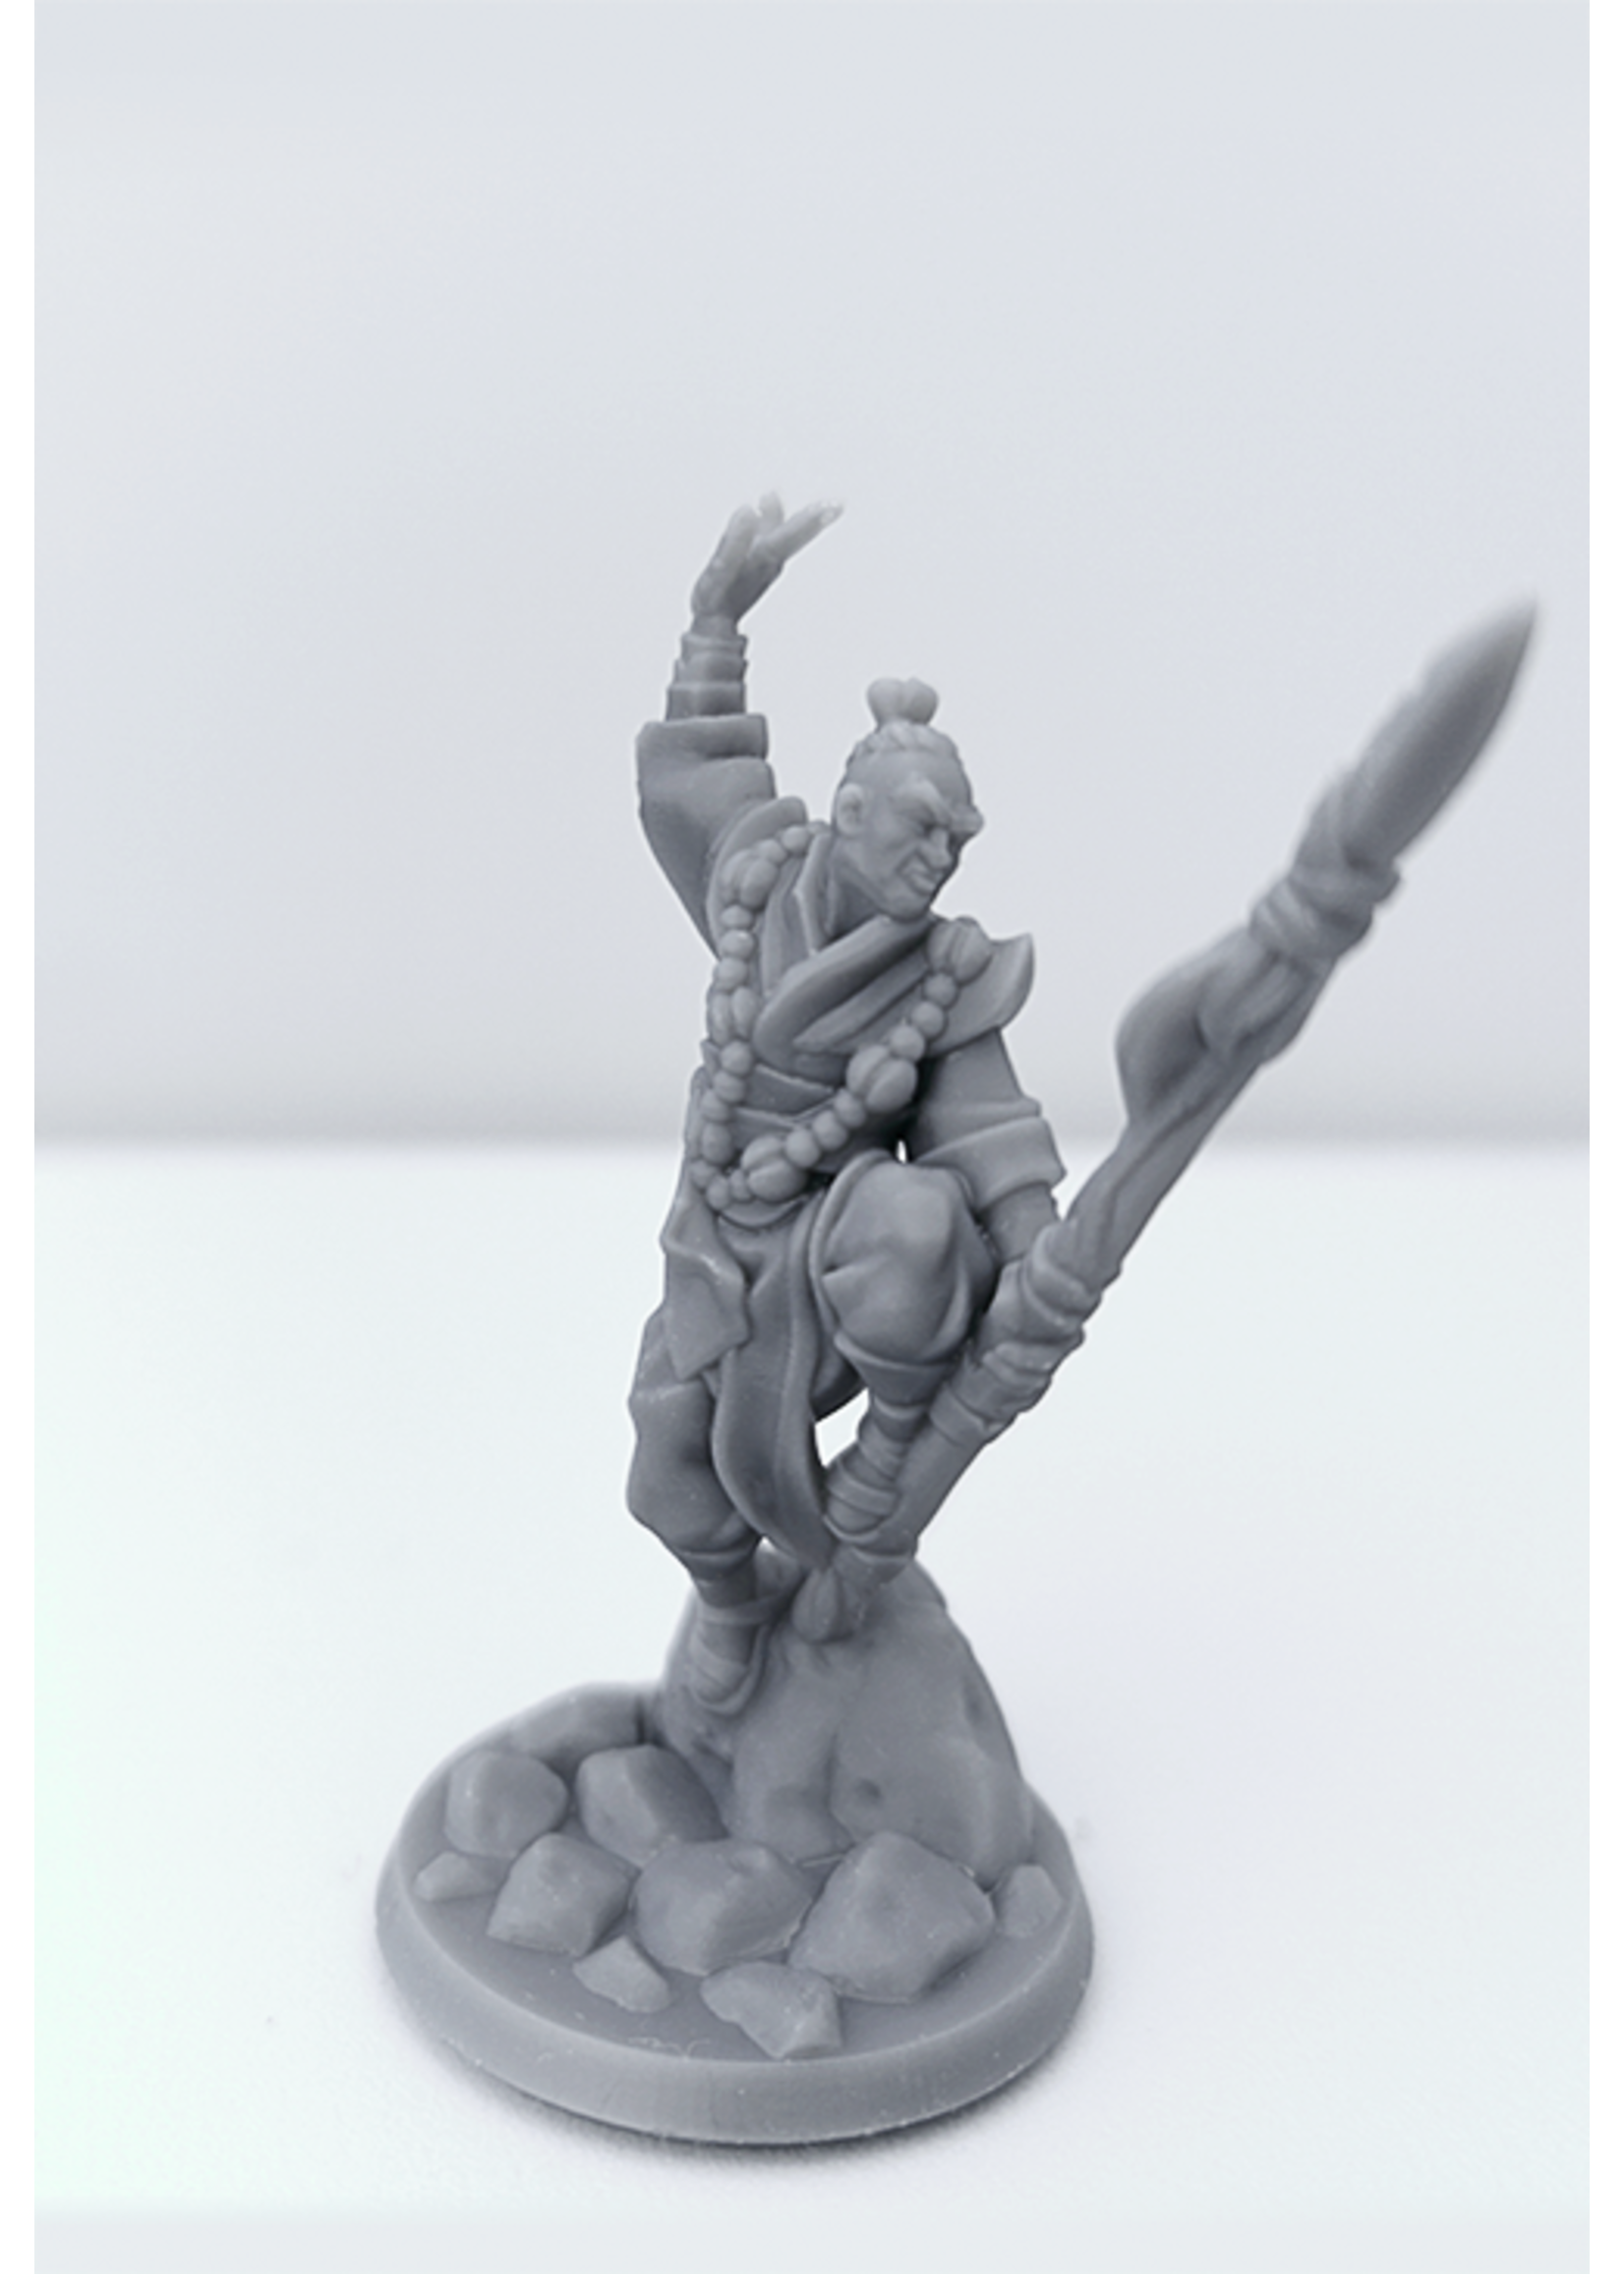 3D Printed Miniature - Monk Male 01 - Dungeons & Dragons - Hero of the Realm KS